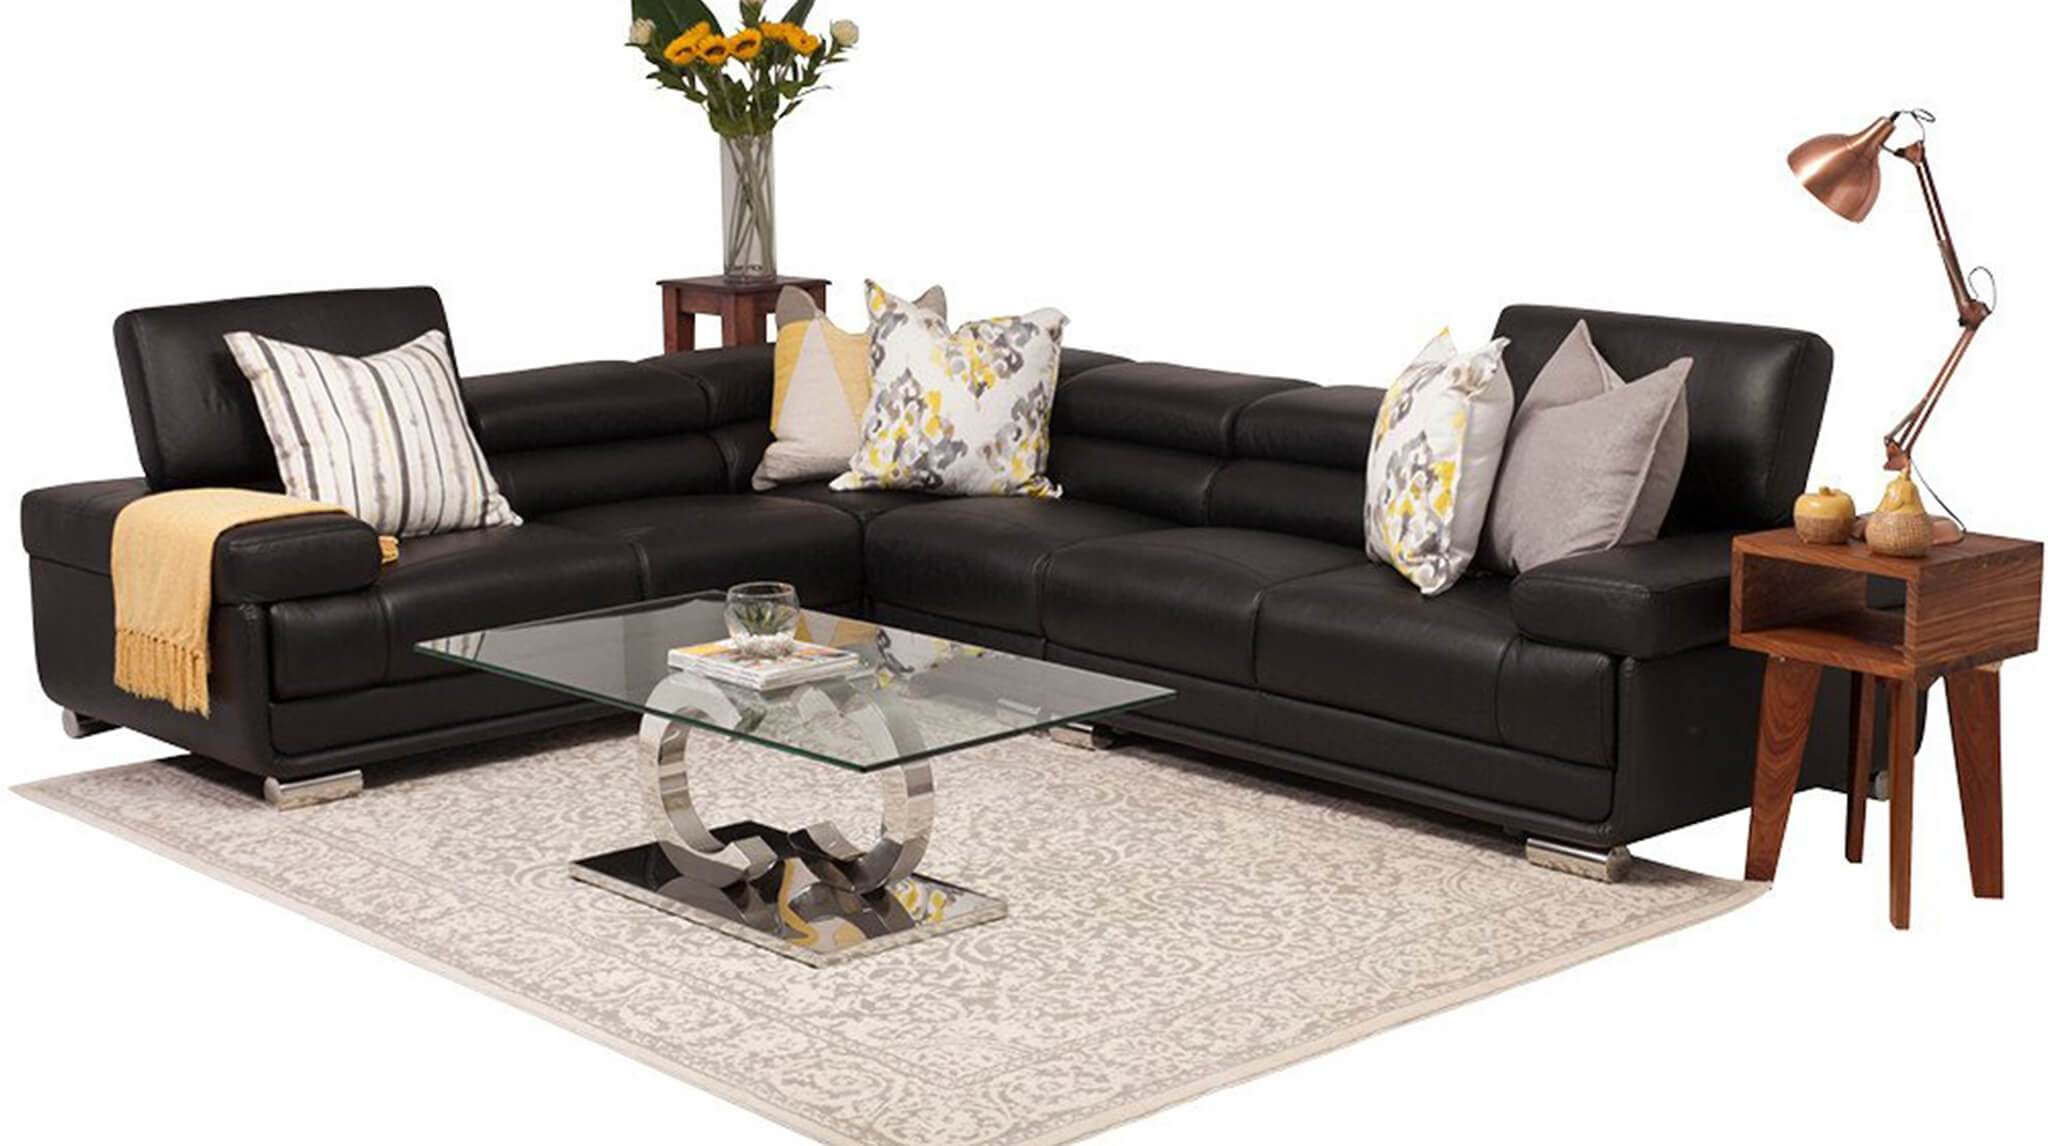 San Miguel Leather Corner Couch | Sectional | Black-SM | Couches For Sale | Leather Gallery Couches